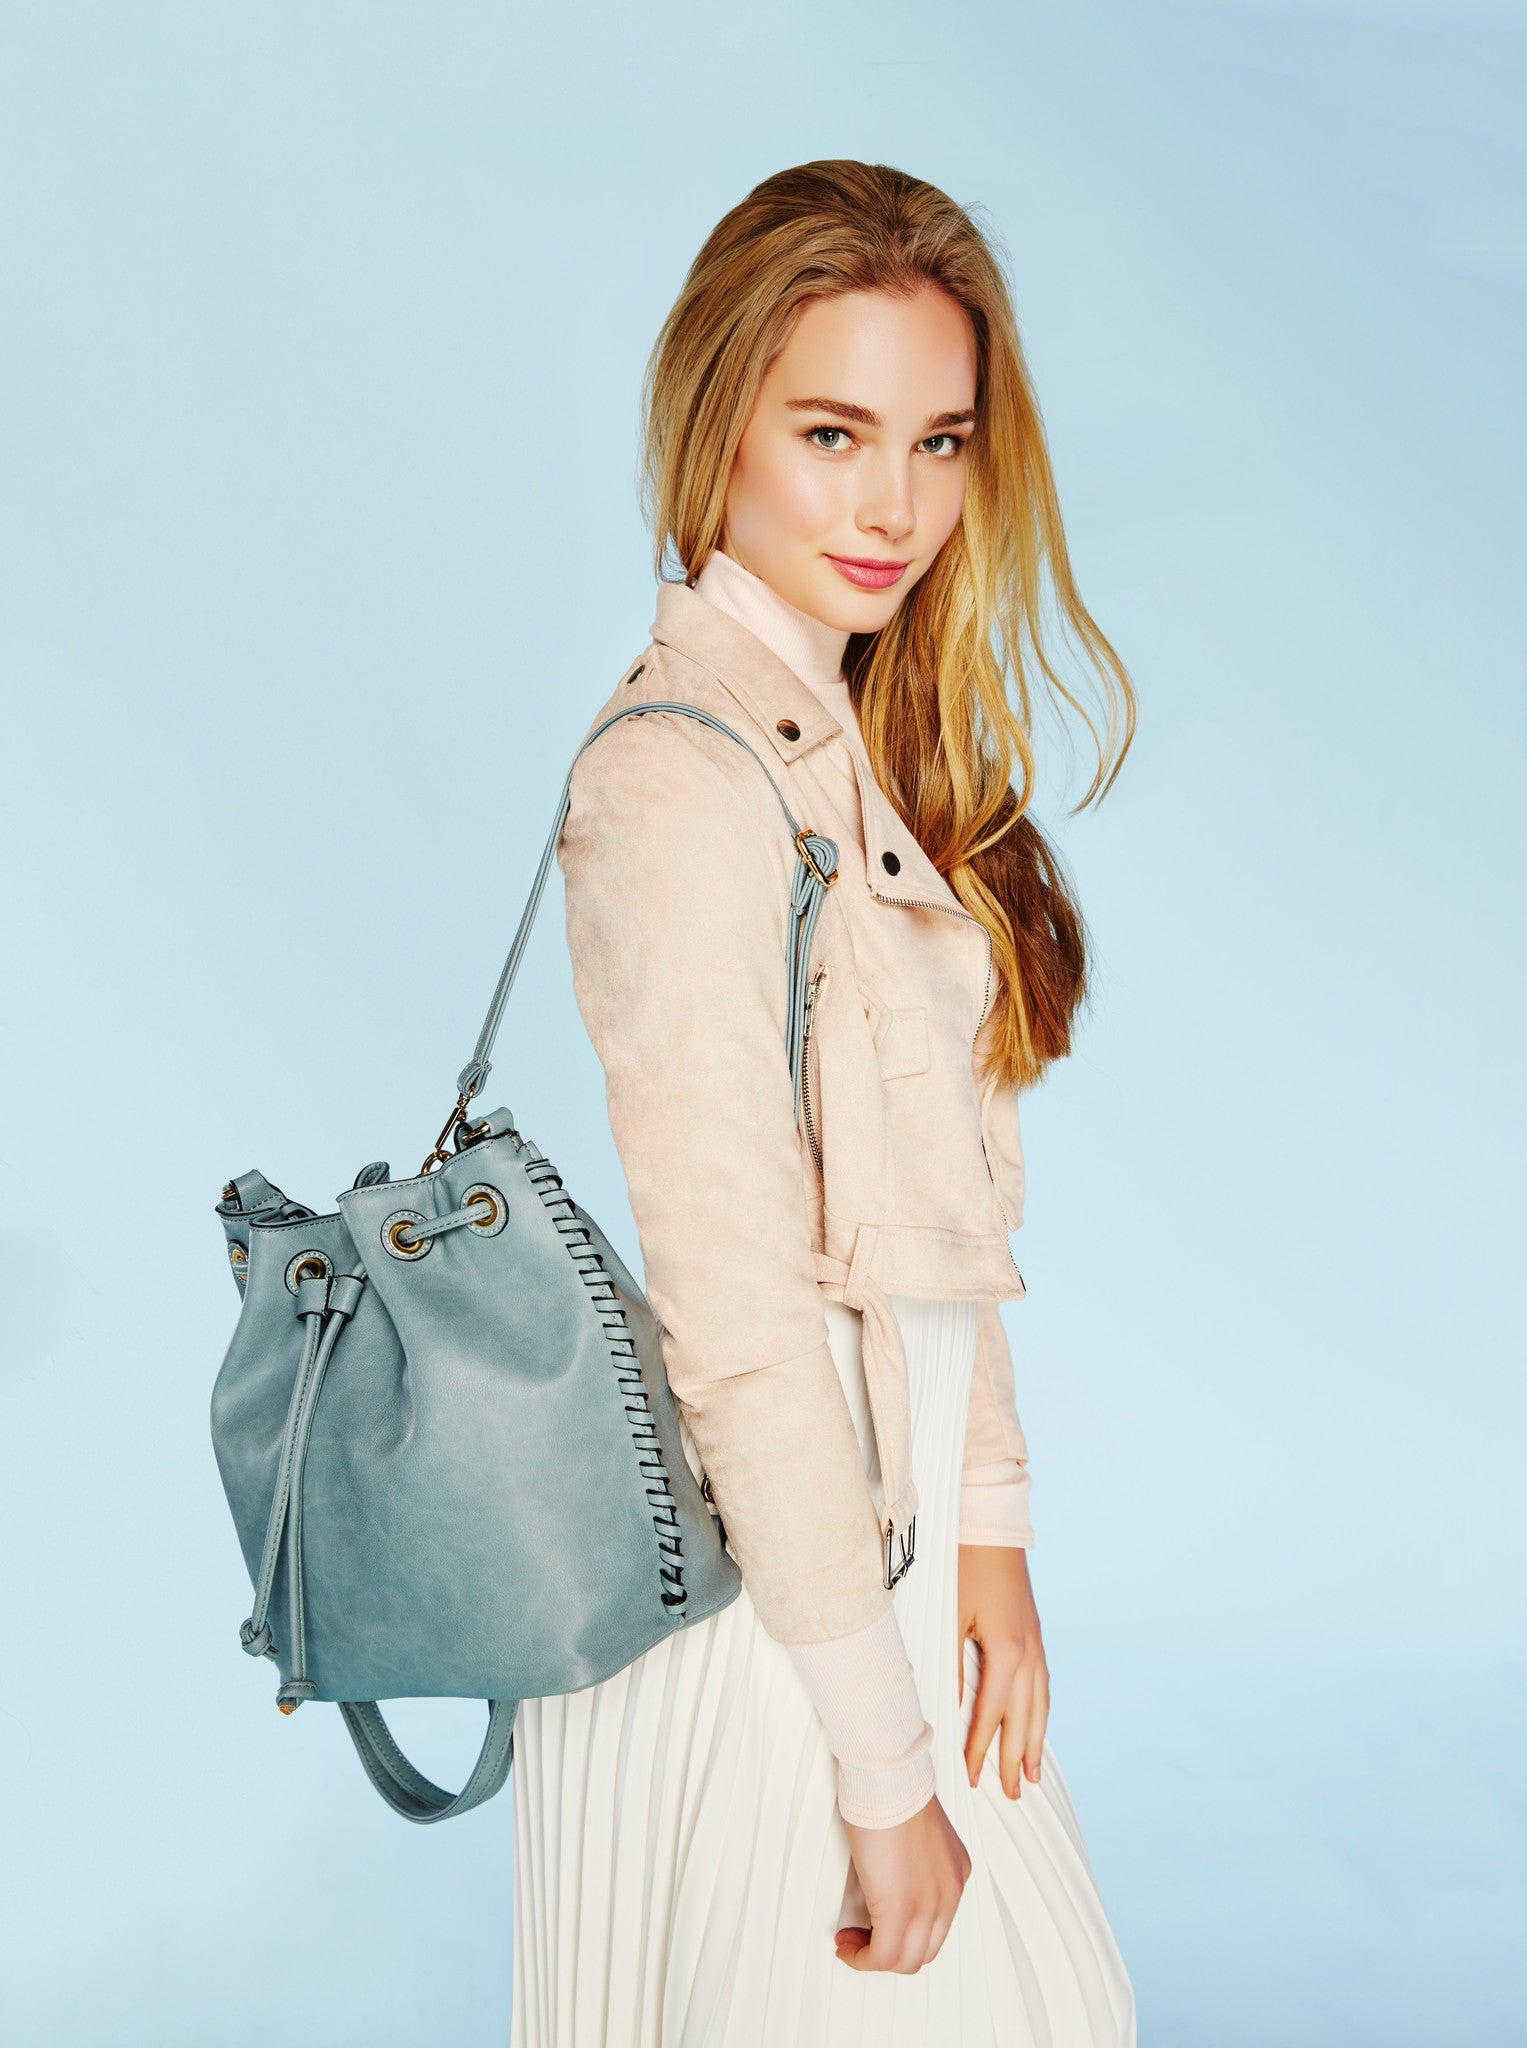 Coleen Whipstitch Backpack - Melie Bianco Handbags Accessories